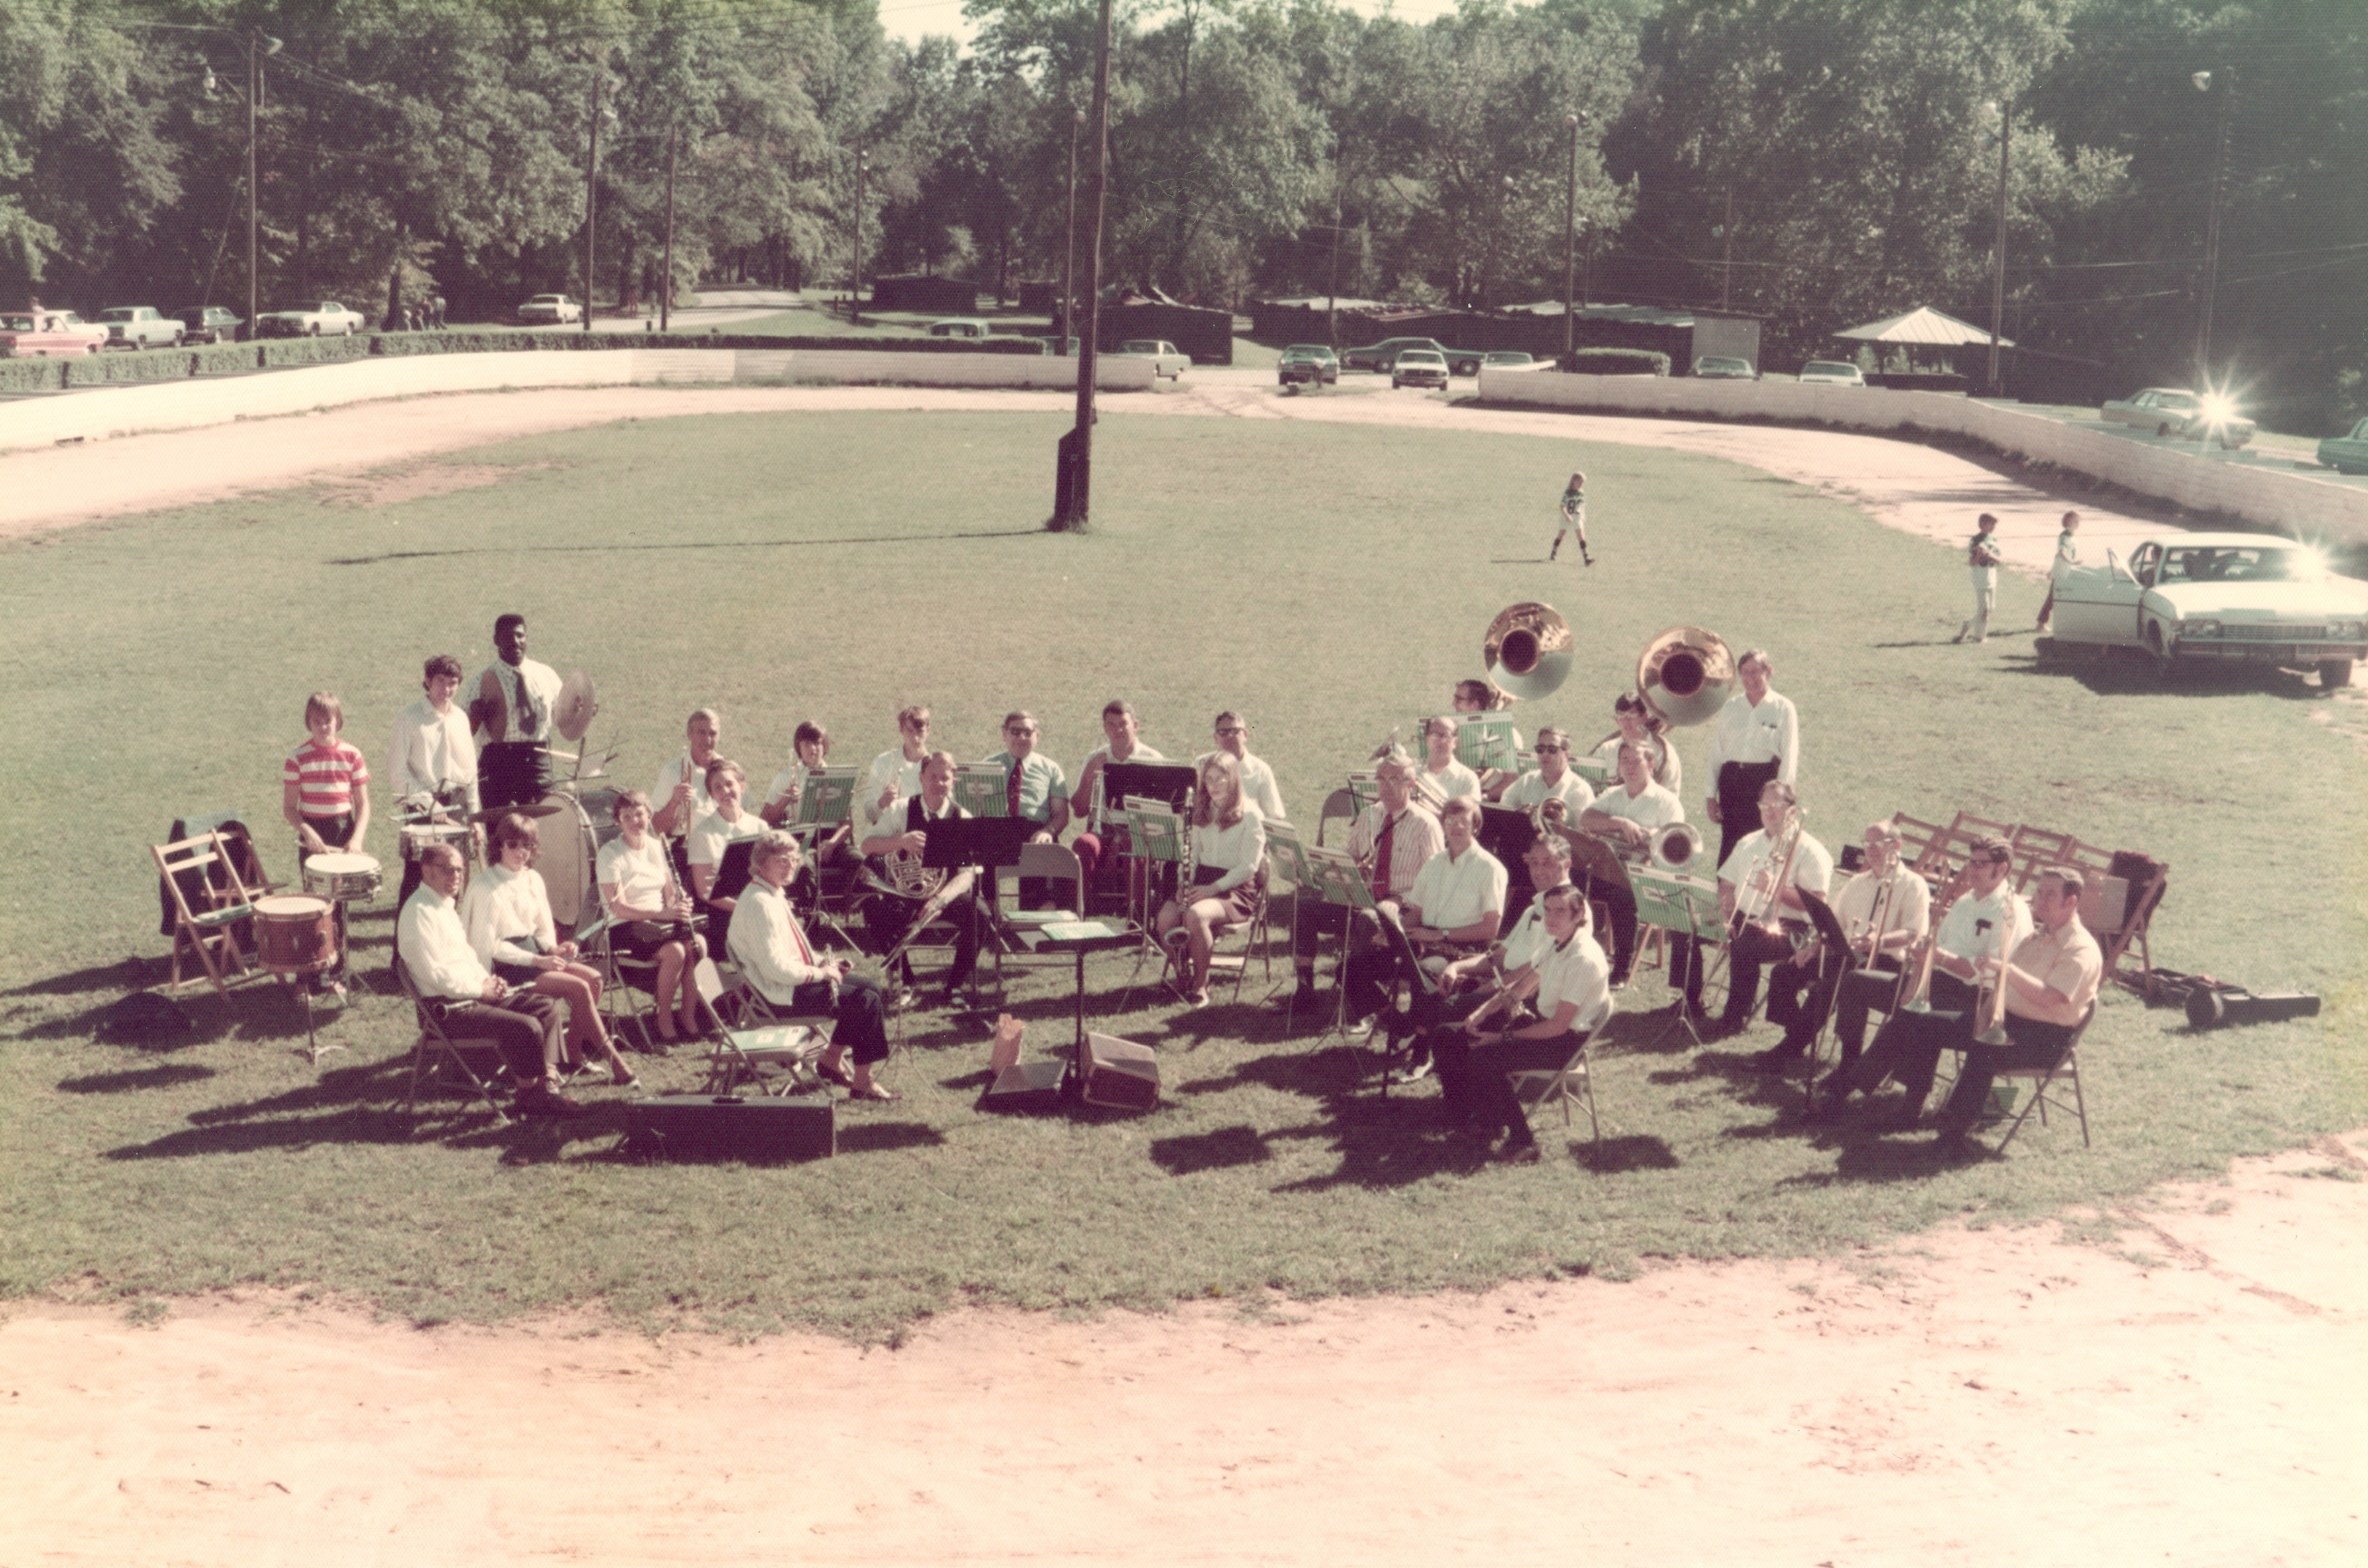 The Greenville Civic Band's first concert. The horse arena, Cleveland Park